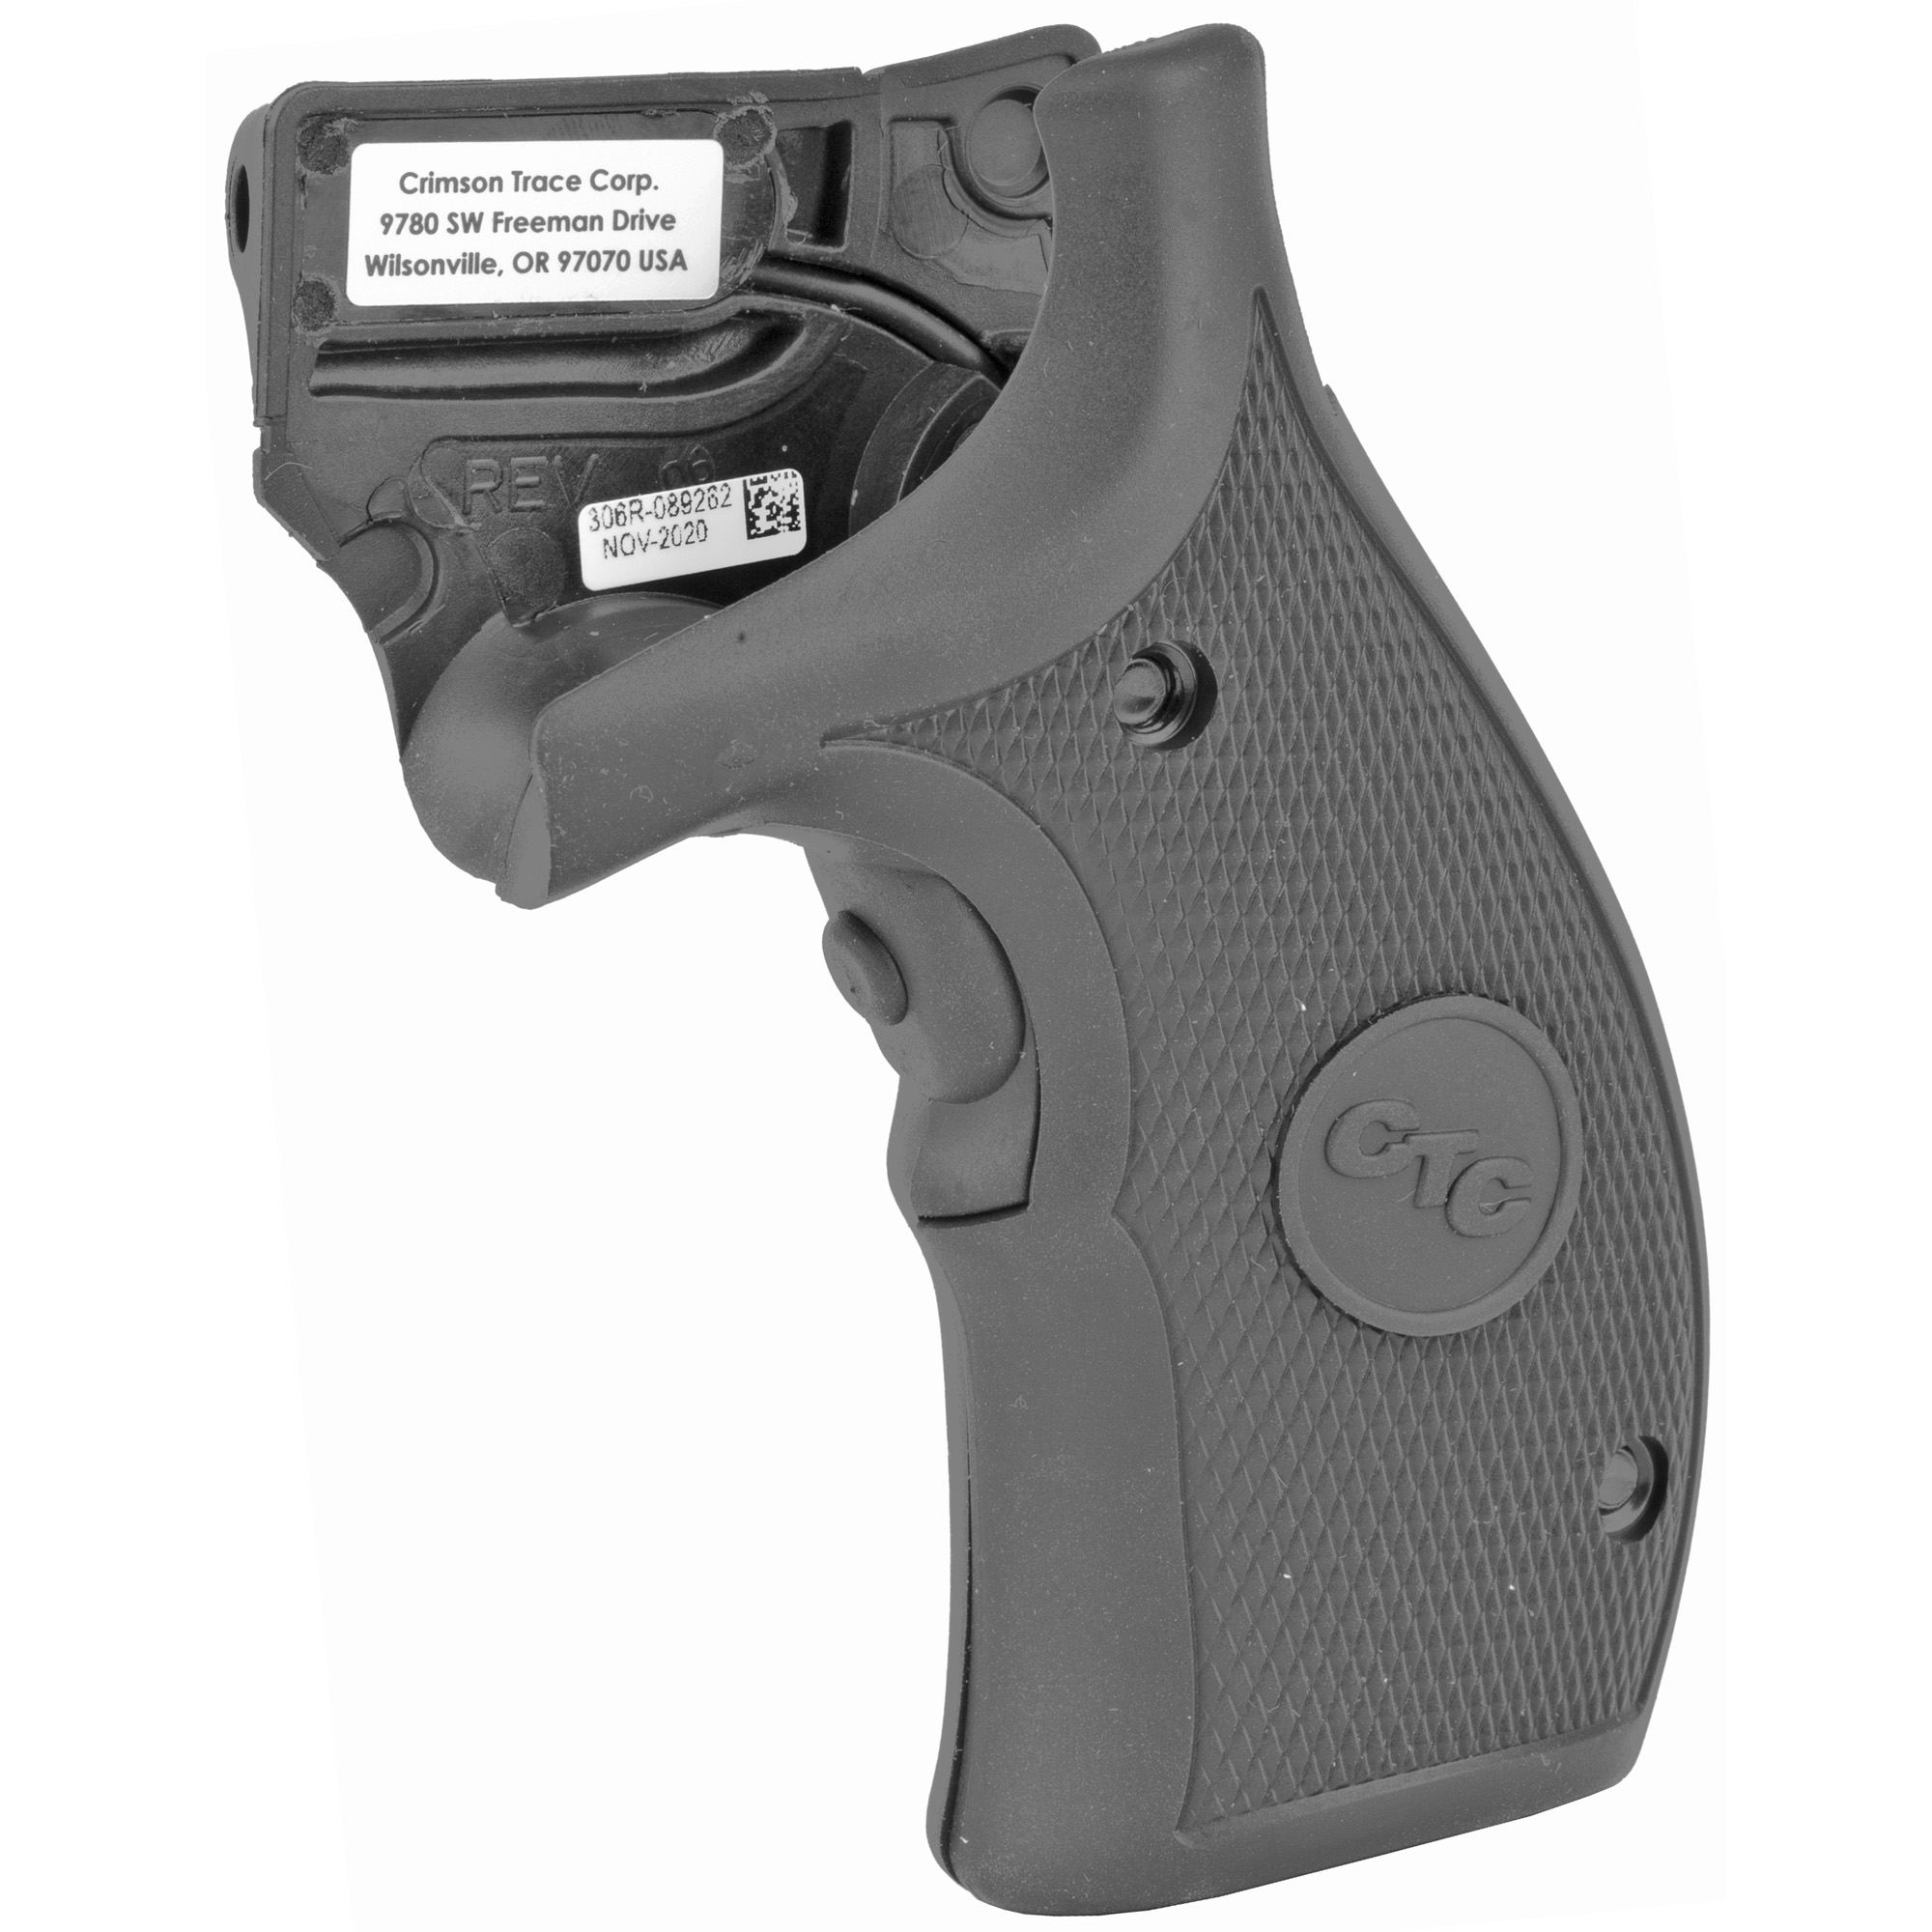 """LG-306 laser sights for Smith & Wesson K & L-Frame revolvers feature a comfortable rubber overmold on the Lasergrips(R) that is slimmed down for concealed carry ease. The laser activation switch is located in the front of the revolver"""" making activation """"instinctive"""" when you assume a normal firing grip on the revolver."""